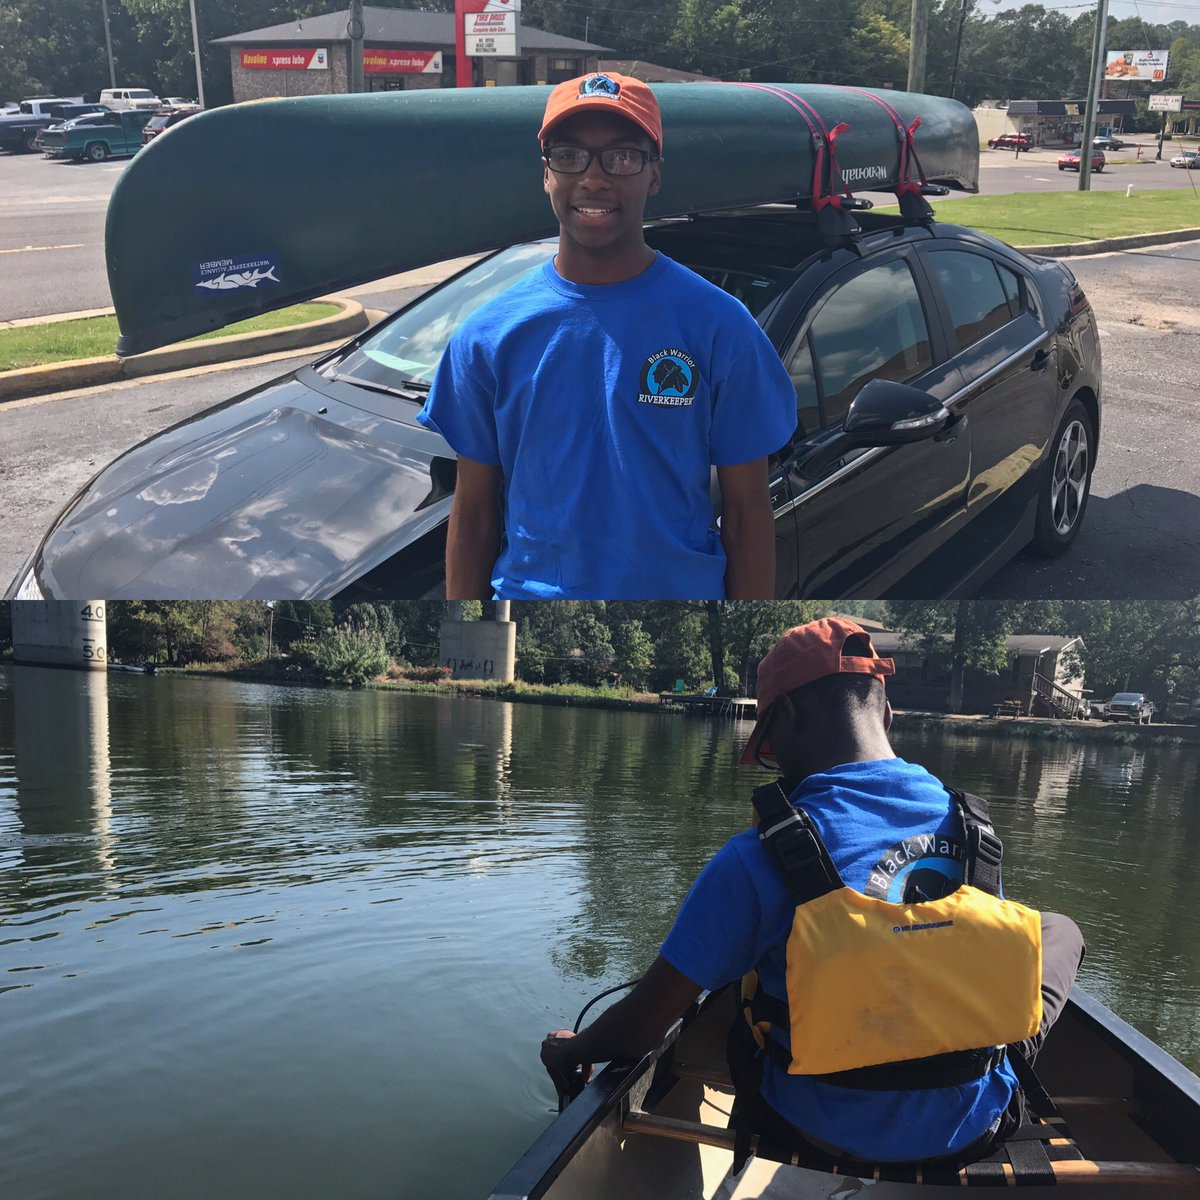 Our @HFCristoRey intern Jay&#39;s best subject is #science.  Naturally, he loves our new Ambient Water Quality Monitoring project! #DefendRivers<br>http://pic.twitter.com/YBCwhLmJ3k